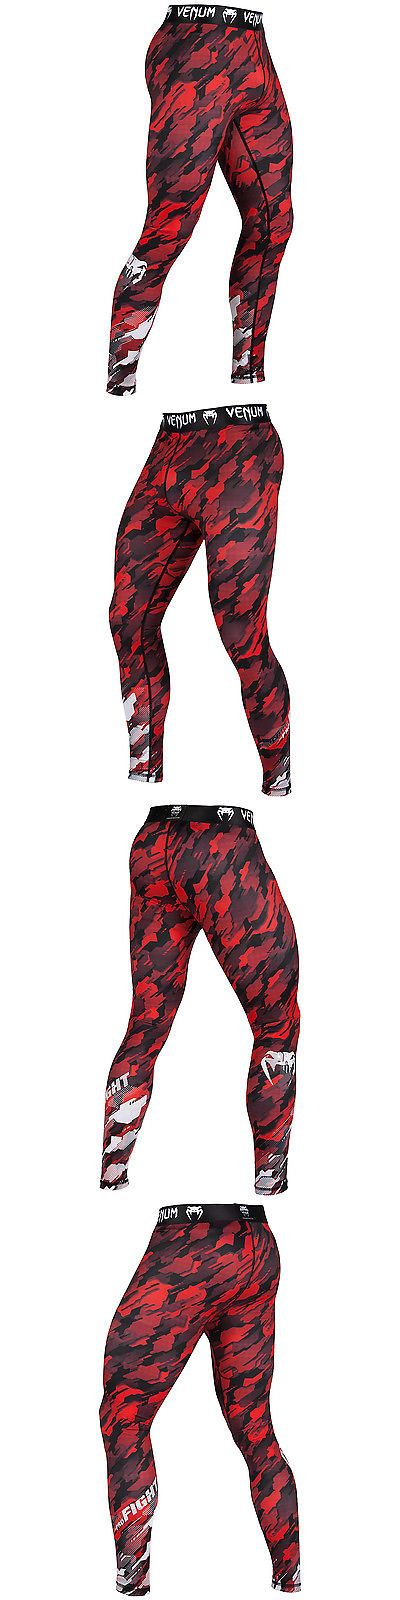 Pants 179772: Compression Pants Venum Tecmo - Red White Spats Mma Bjj Fitness -> BUY IT NOW ONLY: $57.81 on eBay!